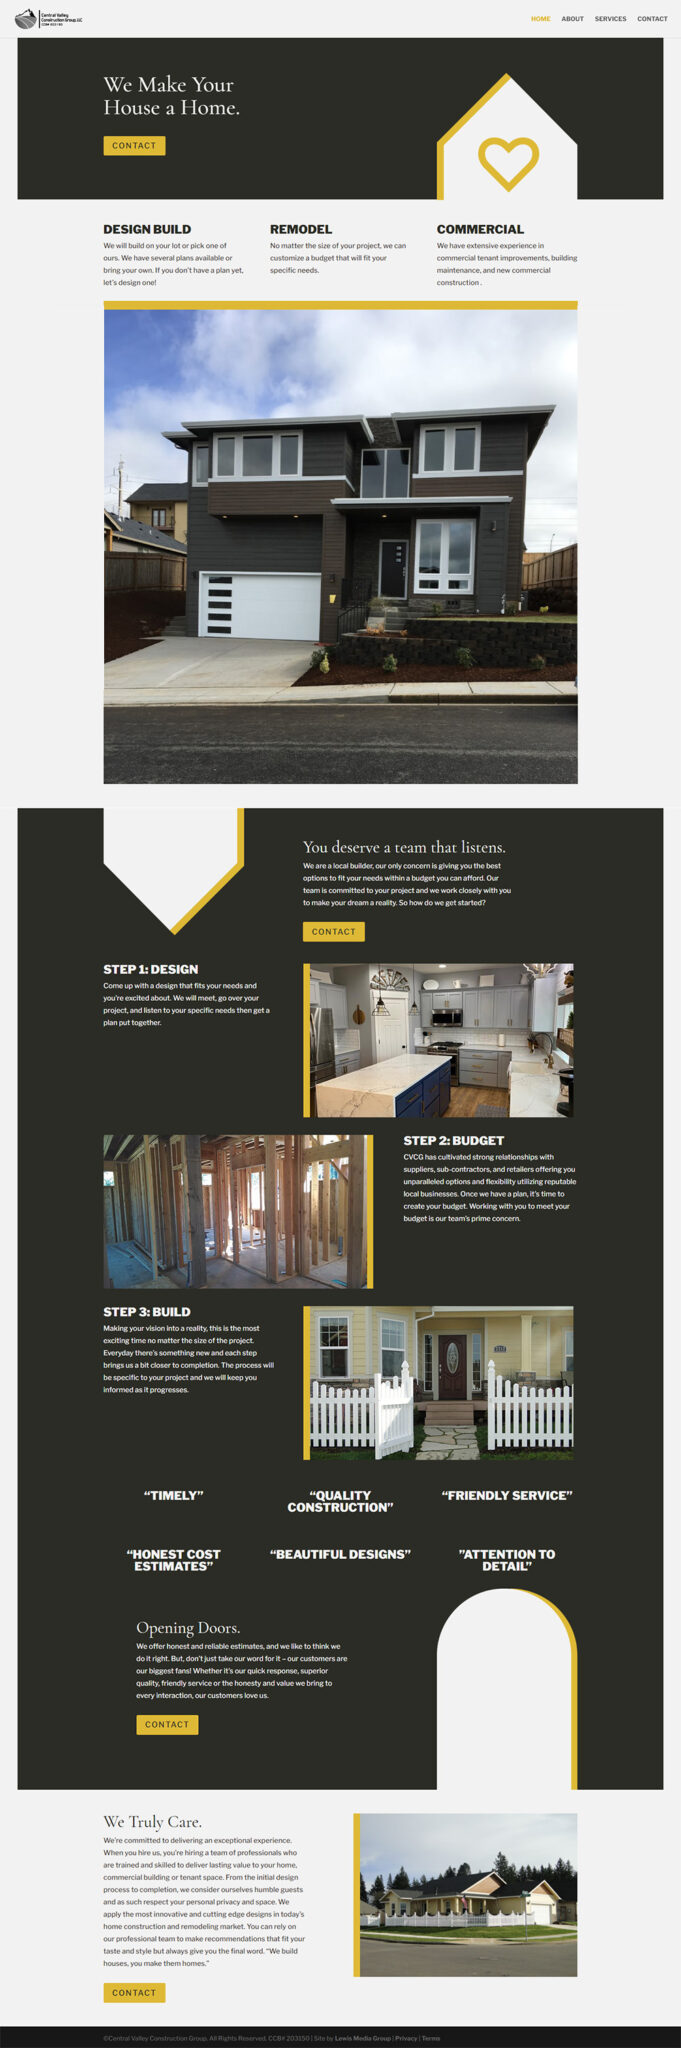 Central Valley Construction Group Home page After redesign